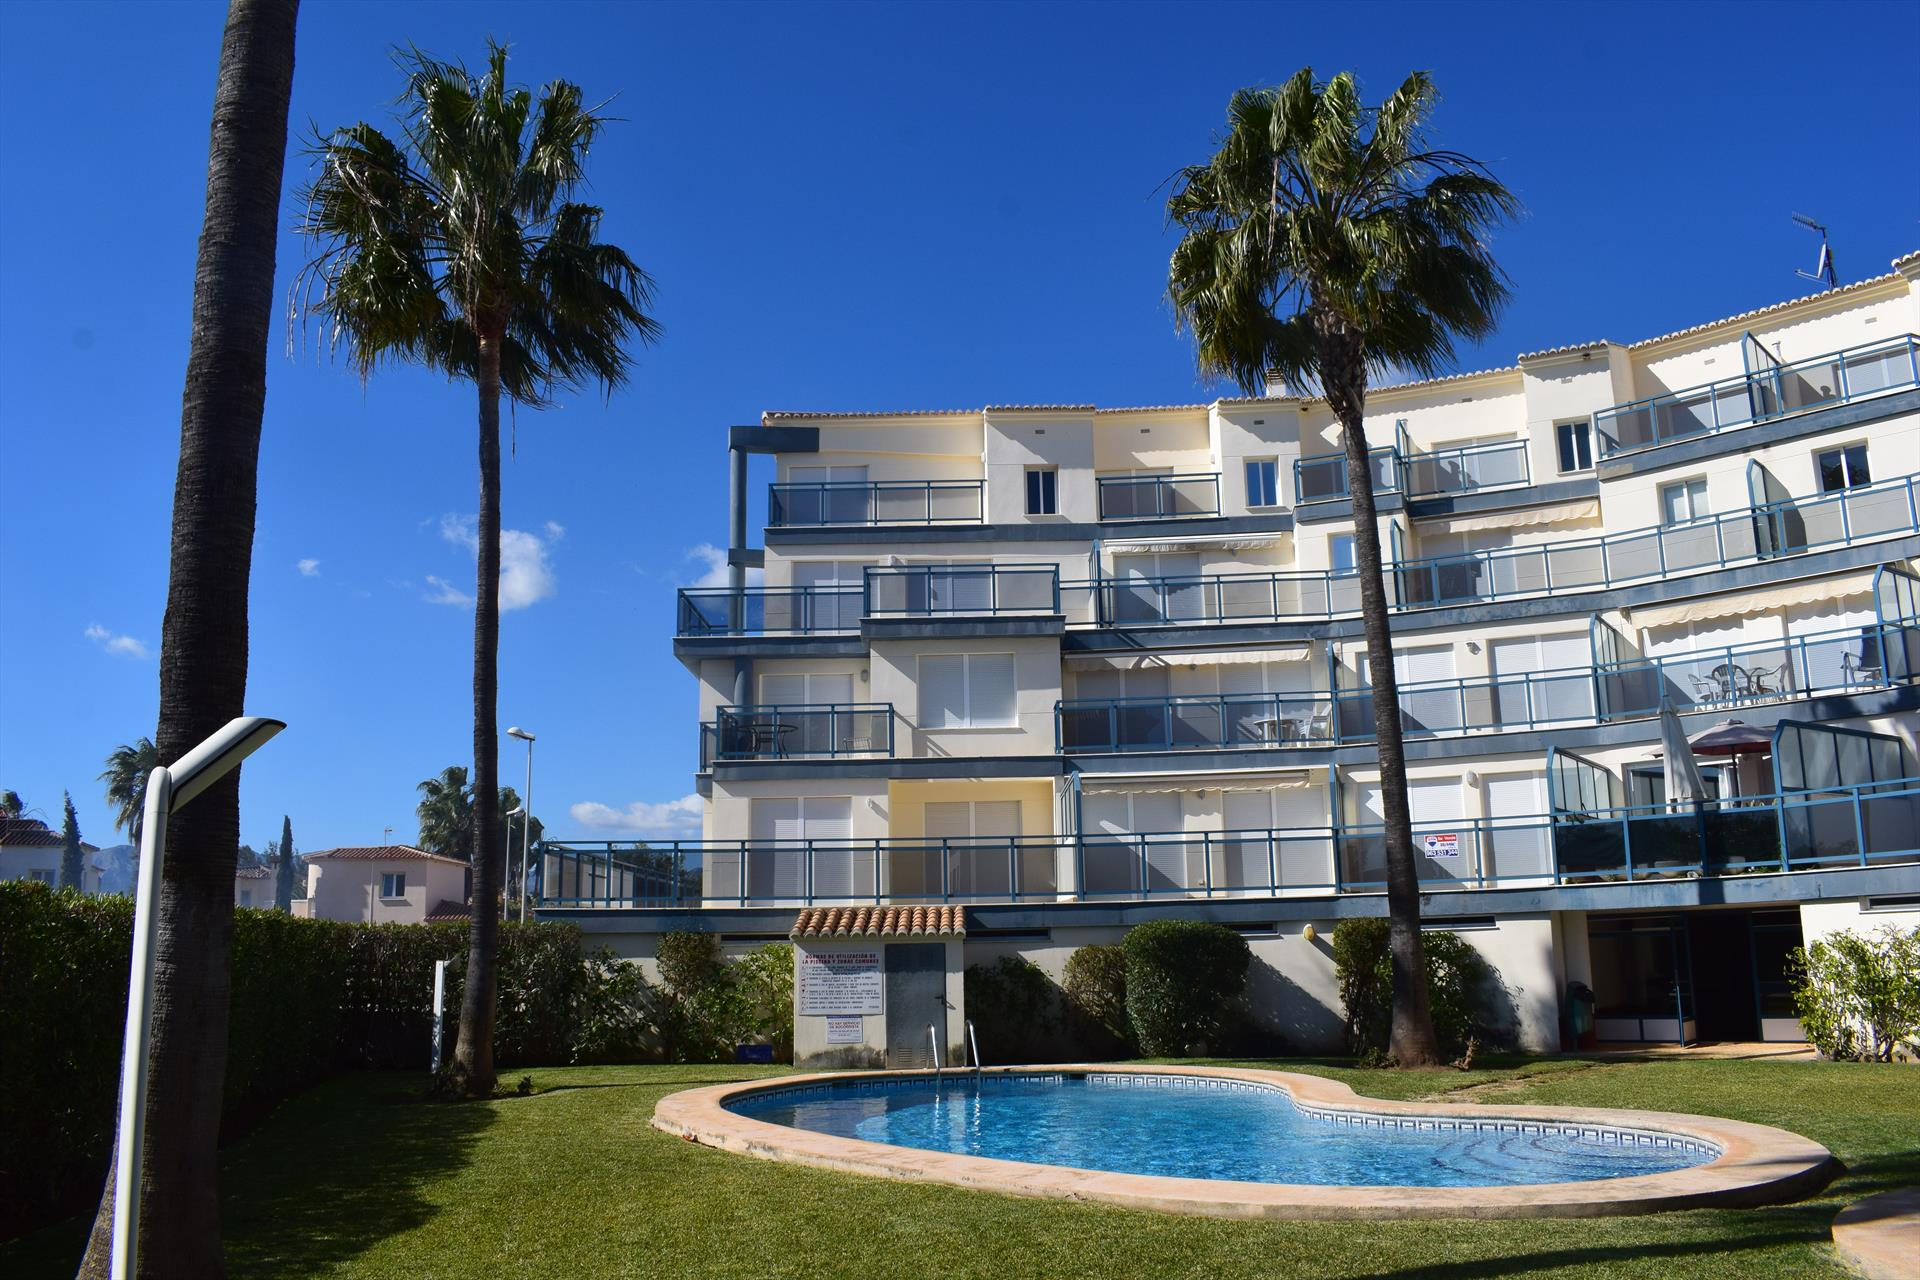 DUP306 Green Beach Oliva Nova, Beautiful and cheerful holiday house  with communal pool in Oliva, on the Costa Blanca, Spain for 5 persons.....